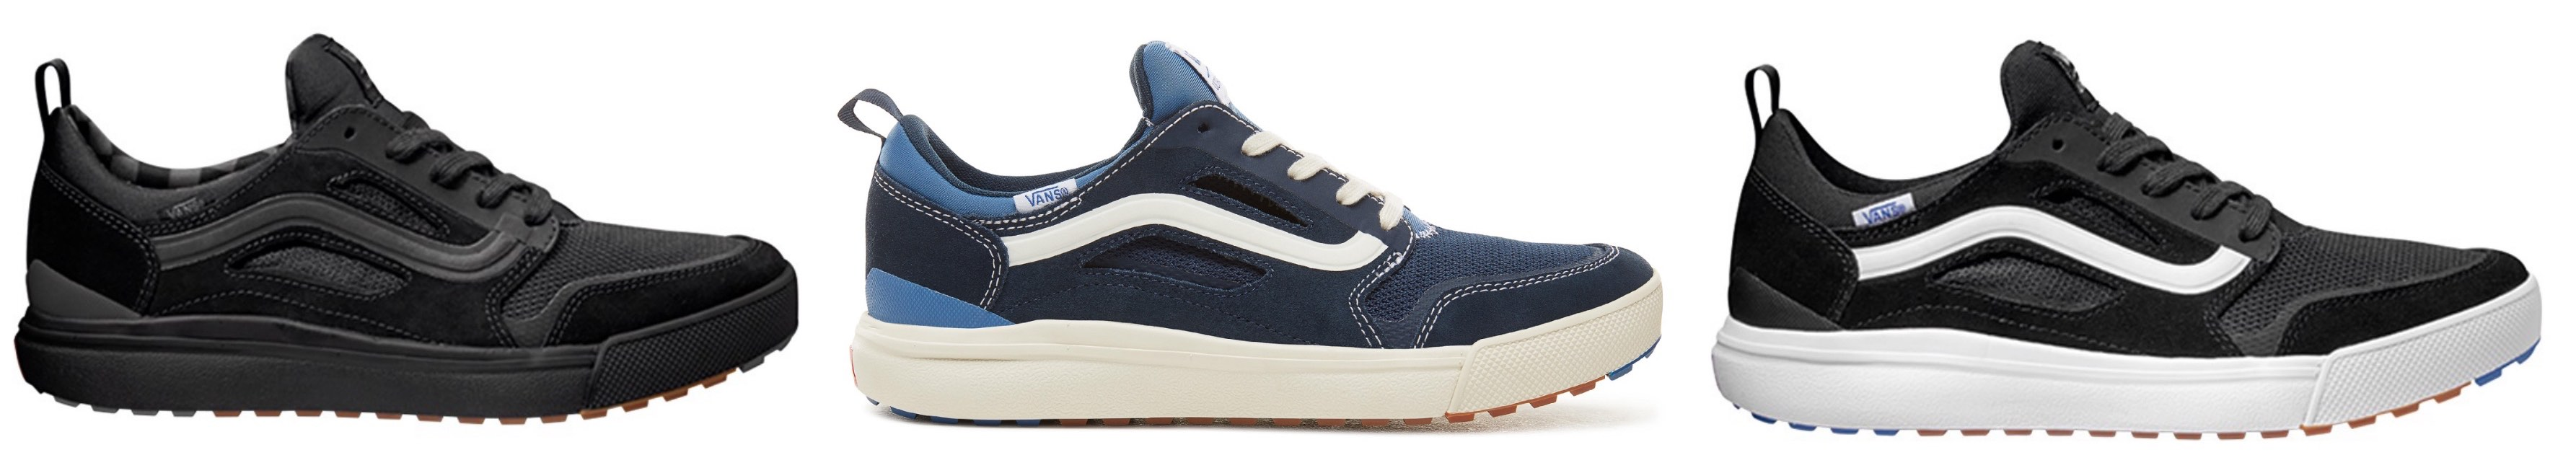 6df887c69f Vans UltraRange 3D colours available in South Africa